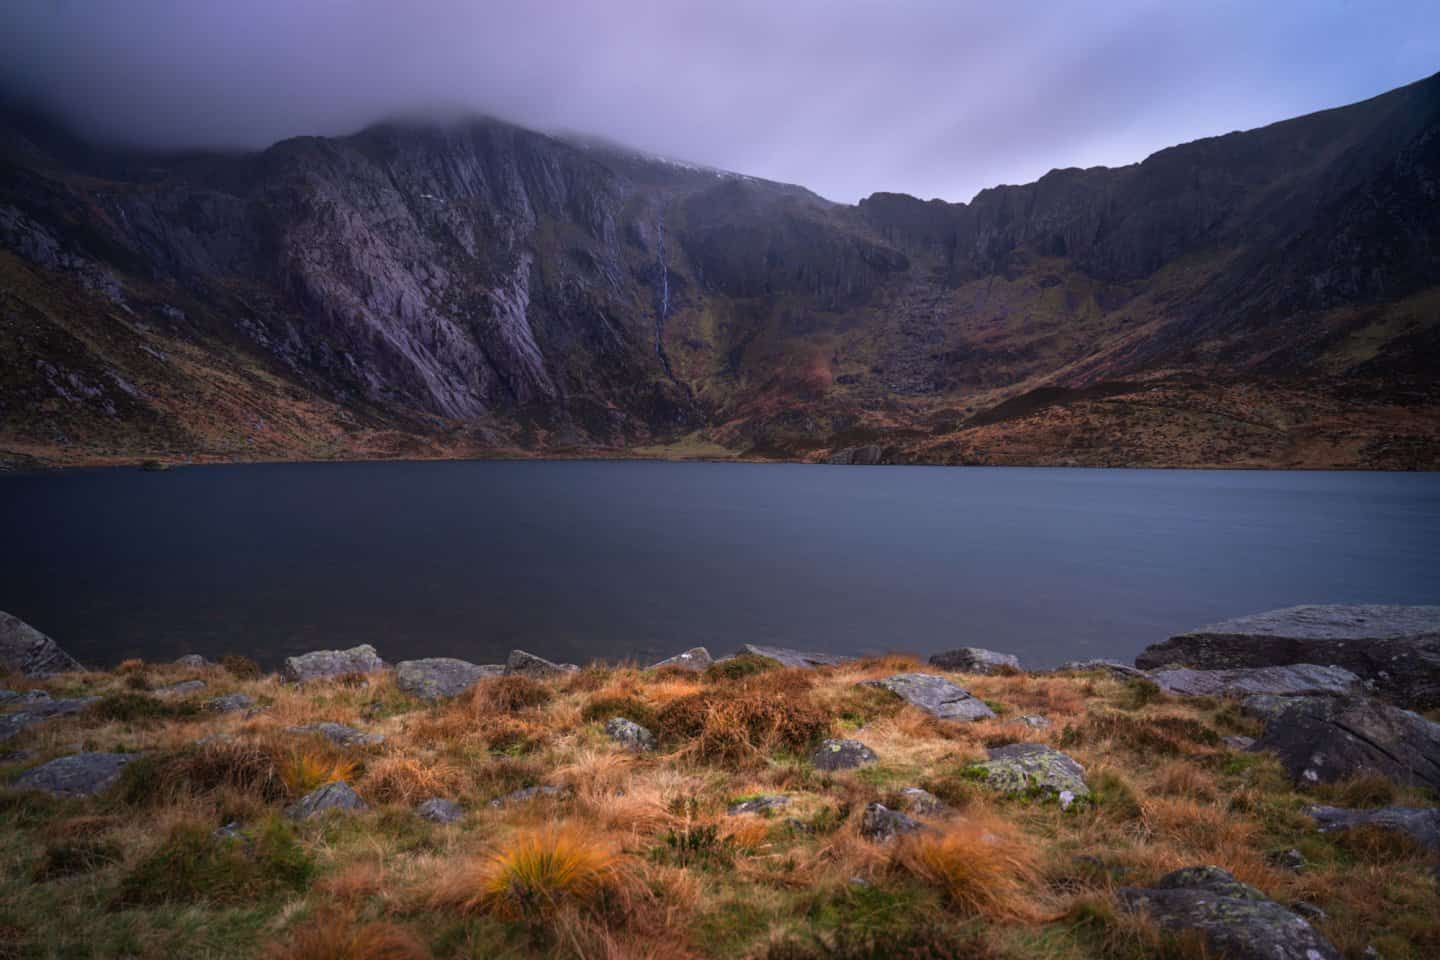 Llyn Idwal is one of many lakes you'll read about in this guide to Snowdonia photography locations.